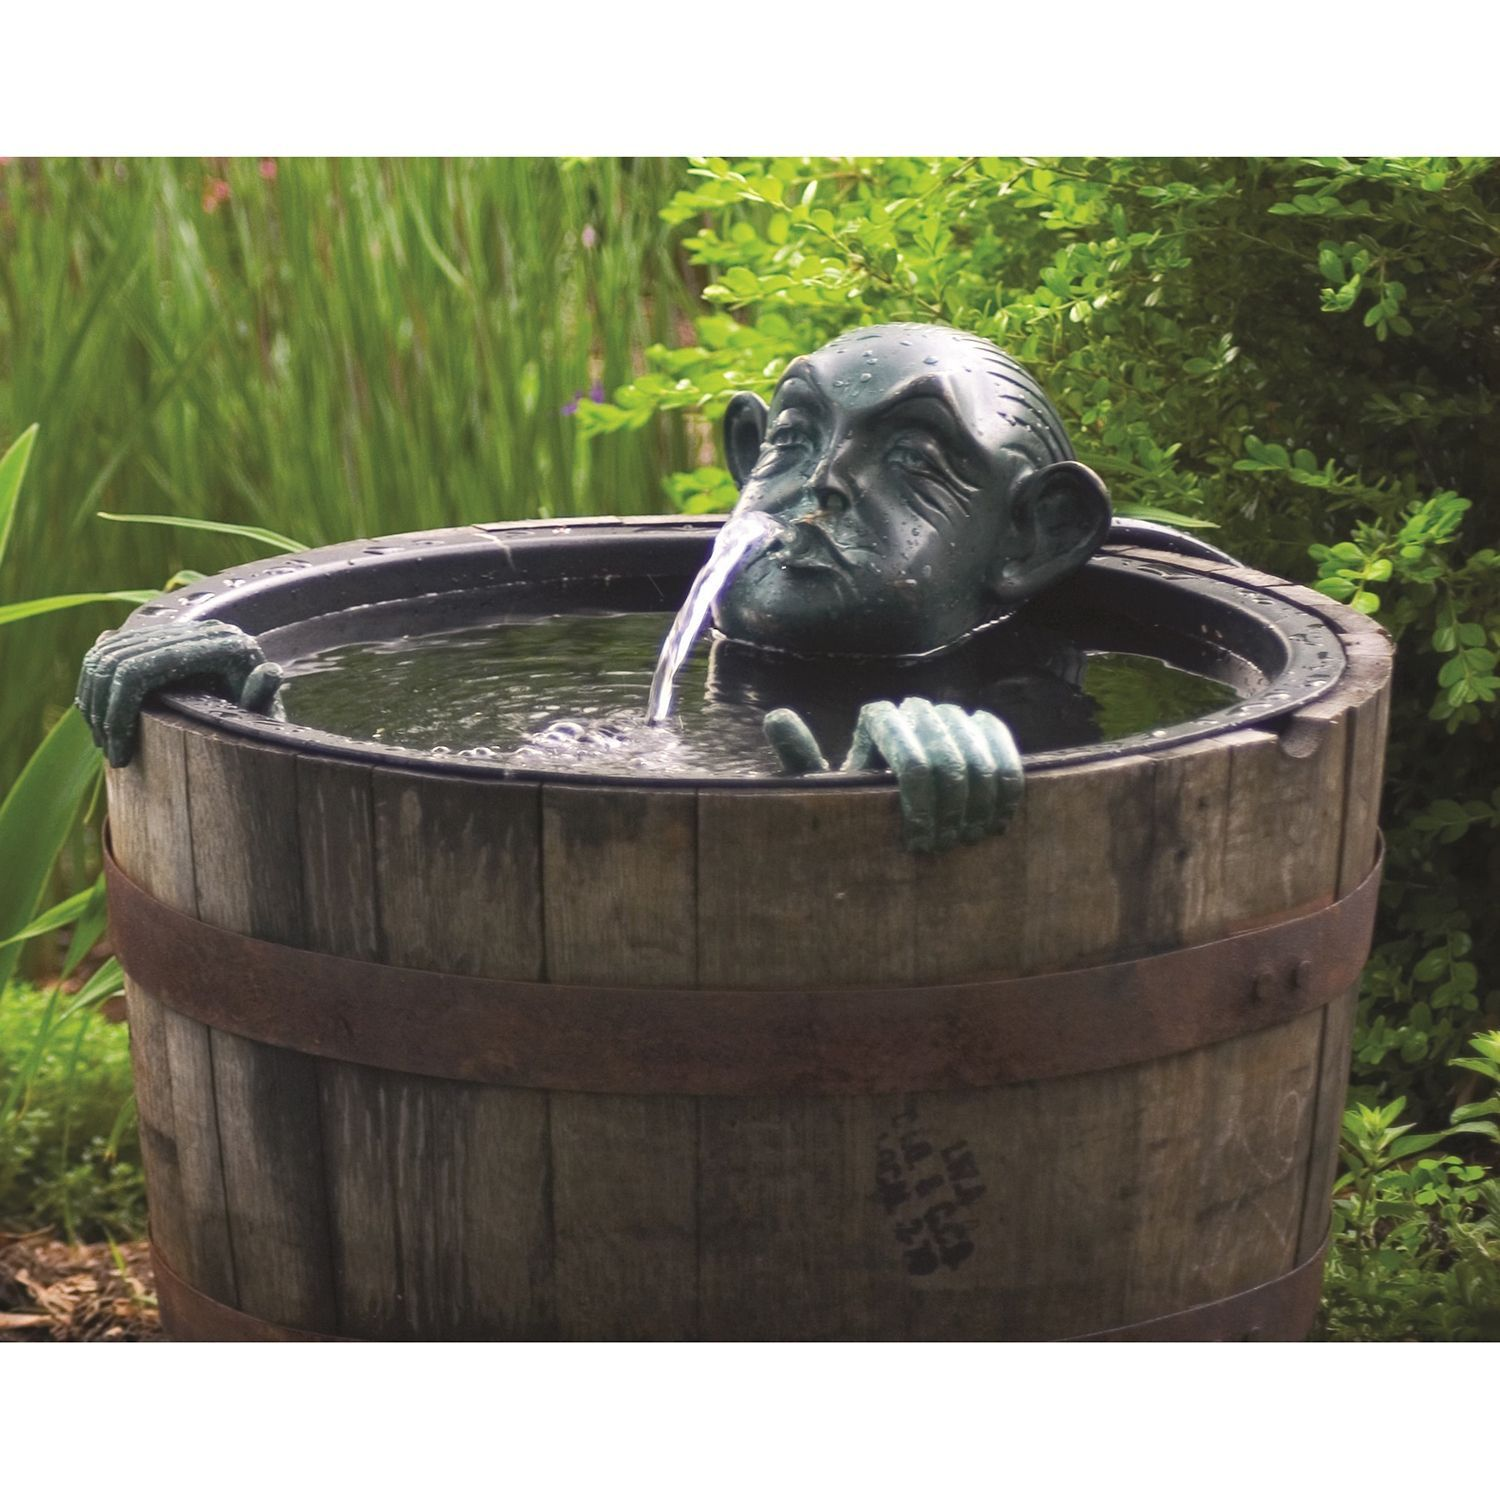 "Man In Barrel Spitter Fountain Head 8.5 L X 11"" 8"""